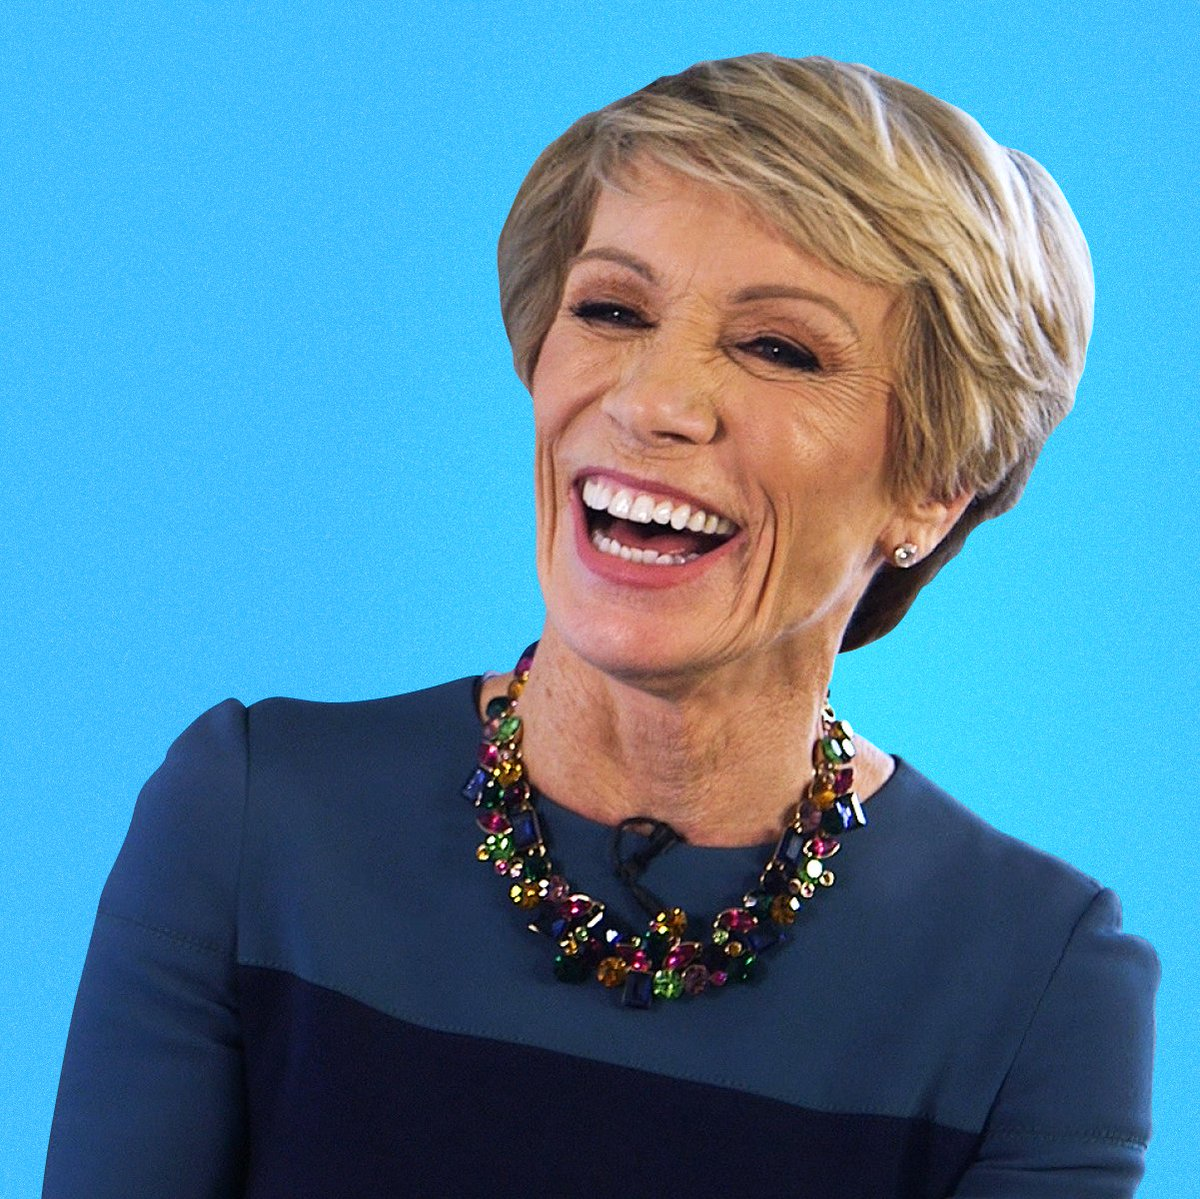 .@BarbaraCorcoran explains how to successfully ask for a raise